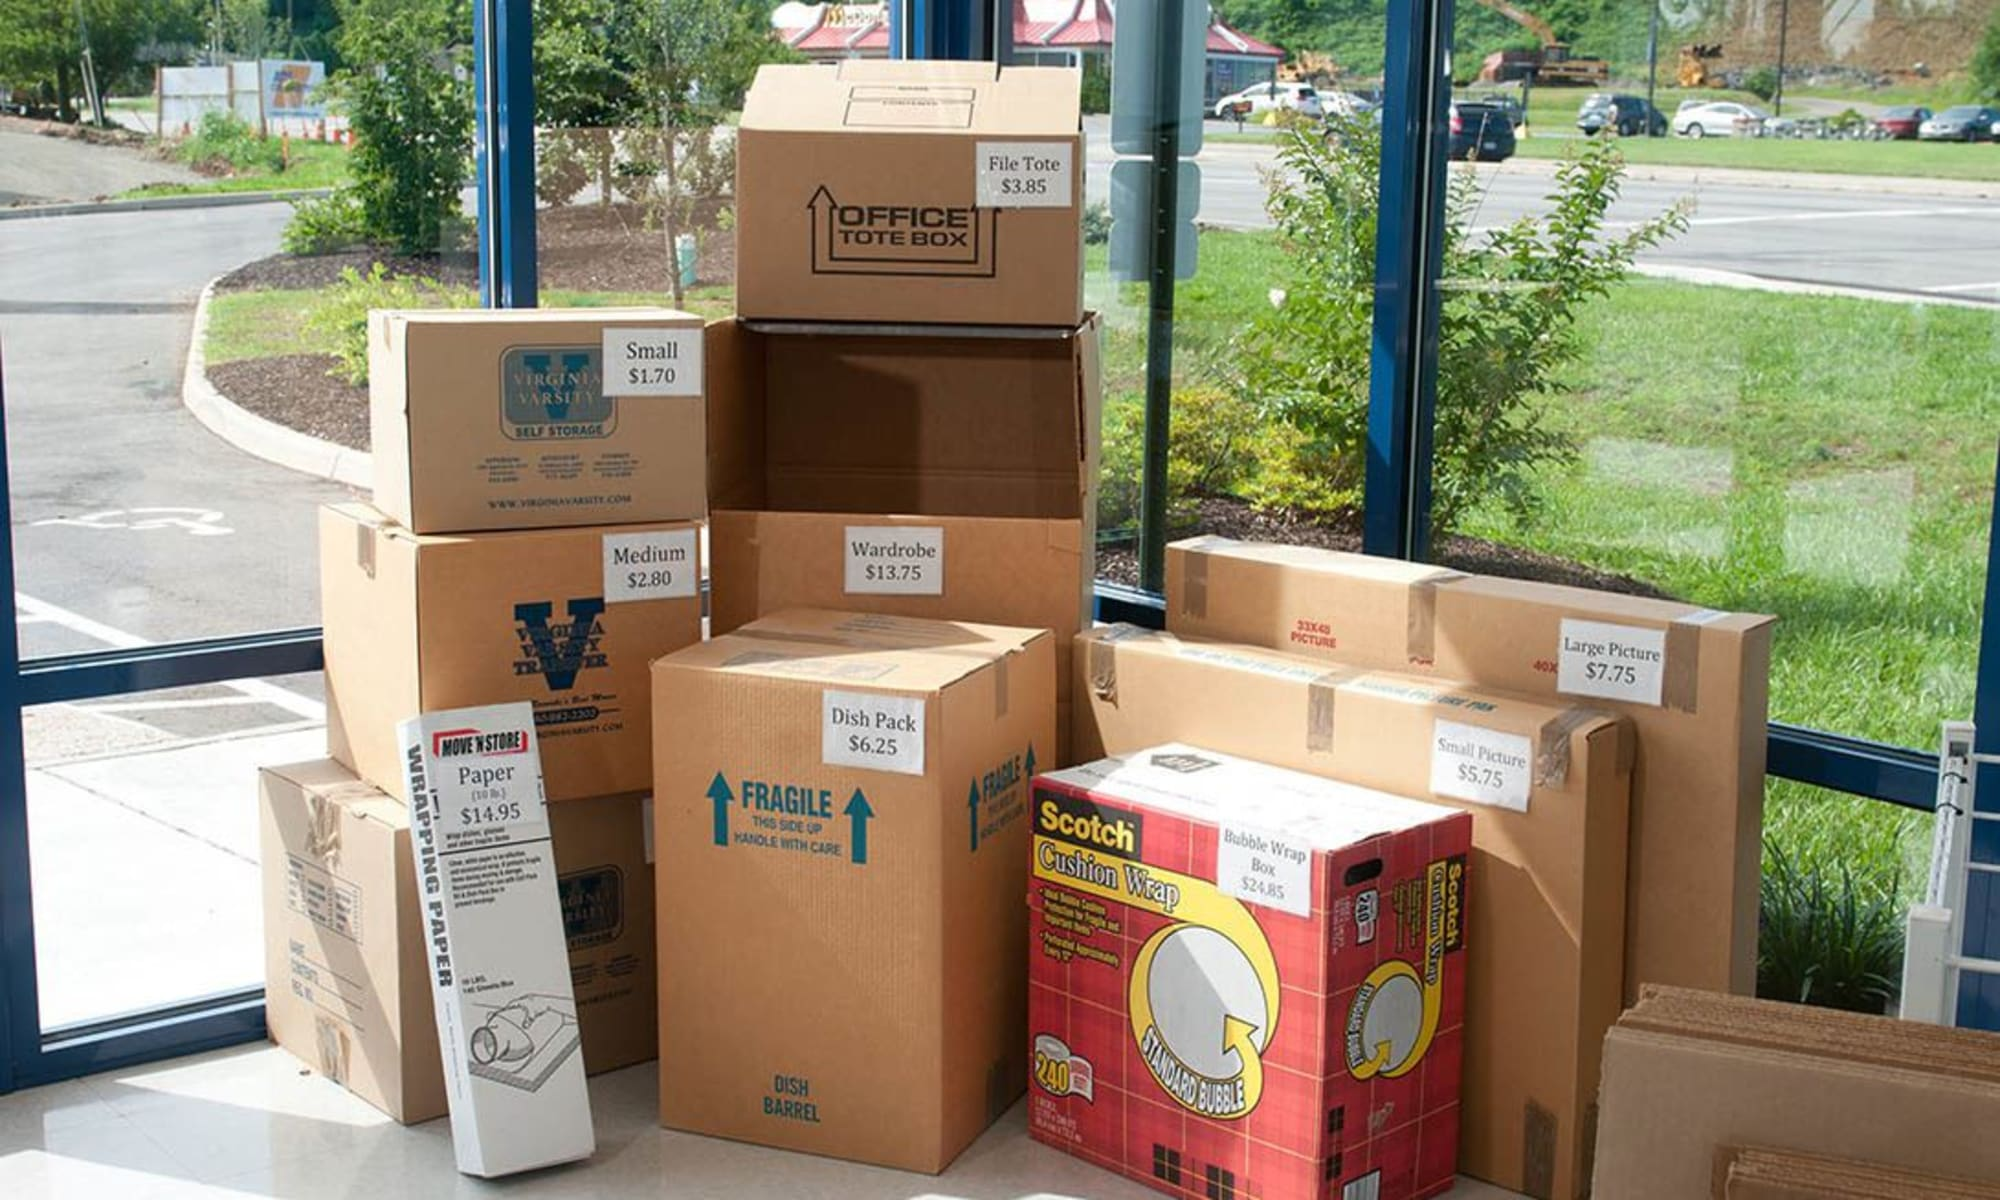 A display of boxes and moving supplies at Virginia Varsity Storage in Salem, Virginia